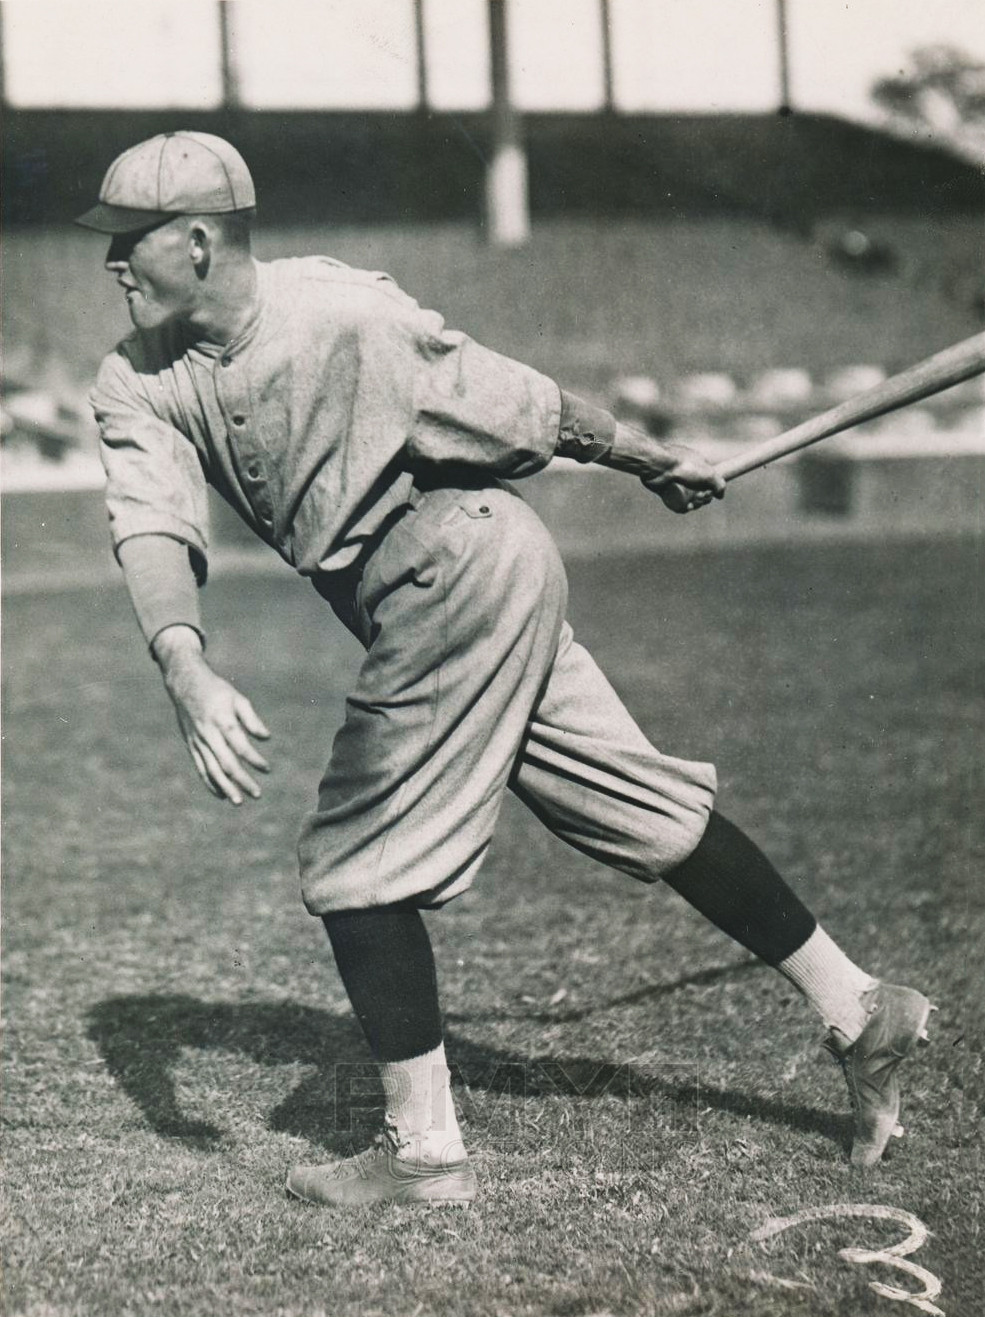 Rogers Hornsby, 1920. Public Domain.